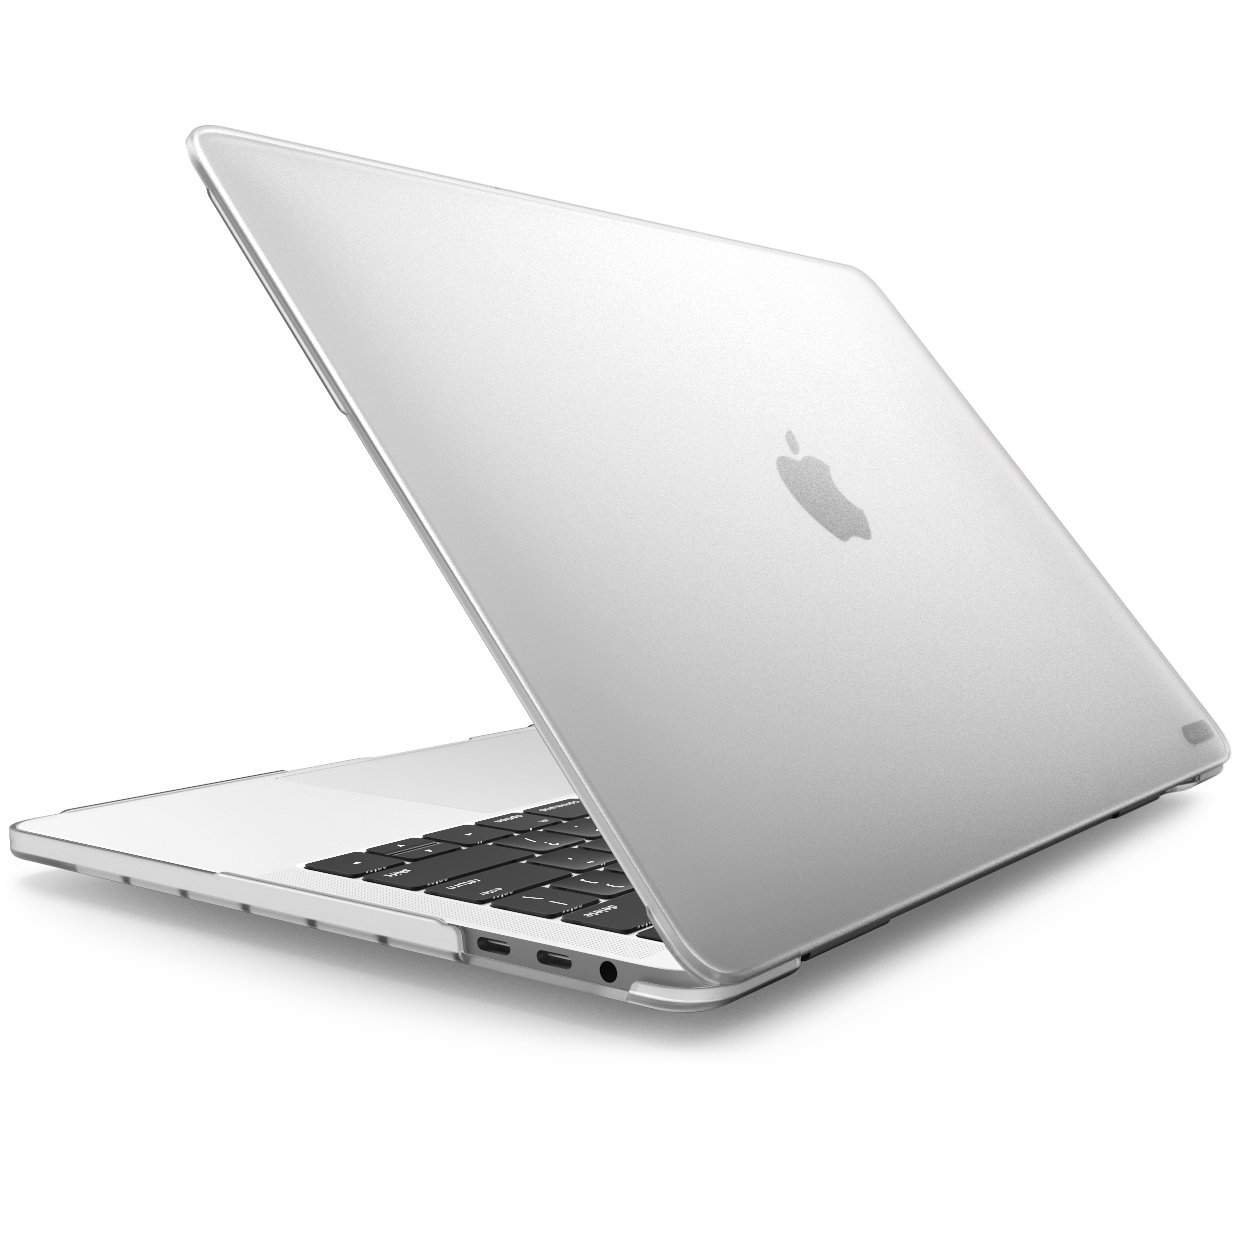 MacBook Pro 15 Case 2018 2017 2016 Release A1990/A1707, i-Blason [Heavy Duty] Slim Rubberized [Dual Layer] Cover with TPU Bumper for Apple Macbook Pro 15 inch with Touch Bar and Touch ID (Frost Clear)